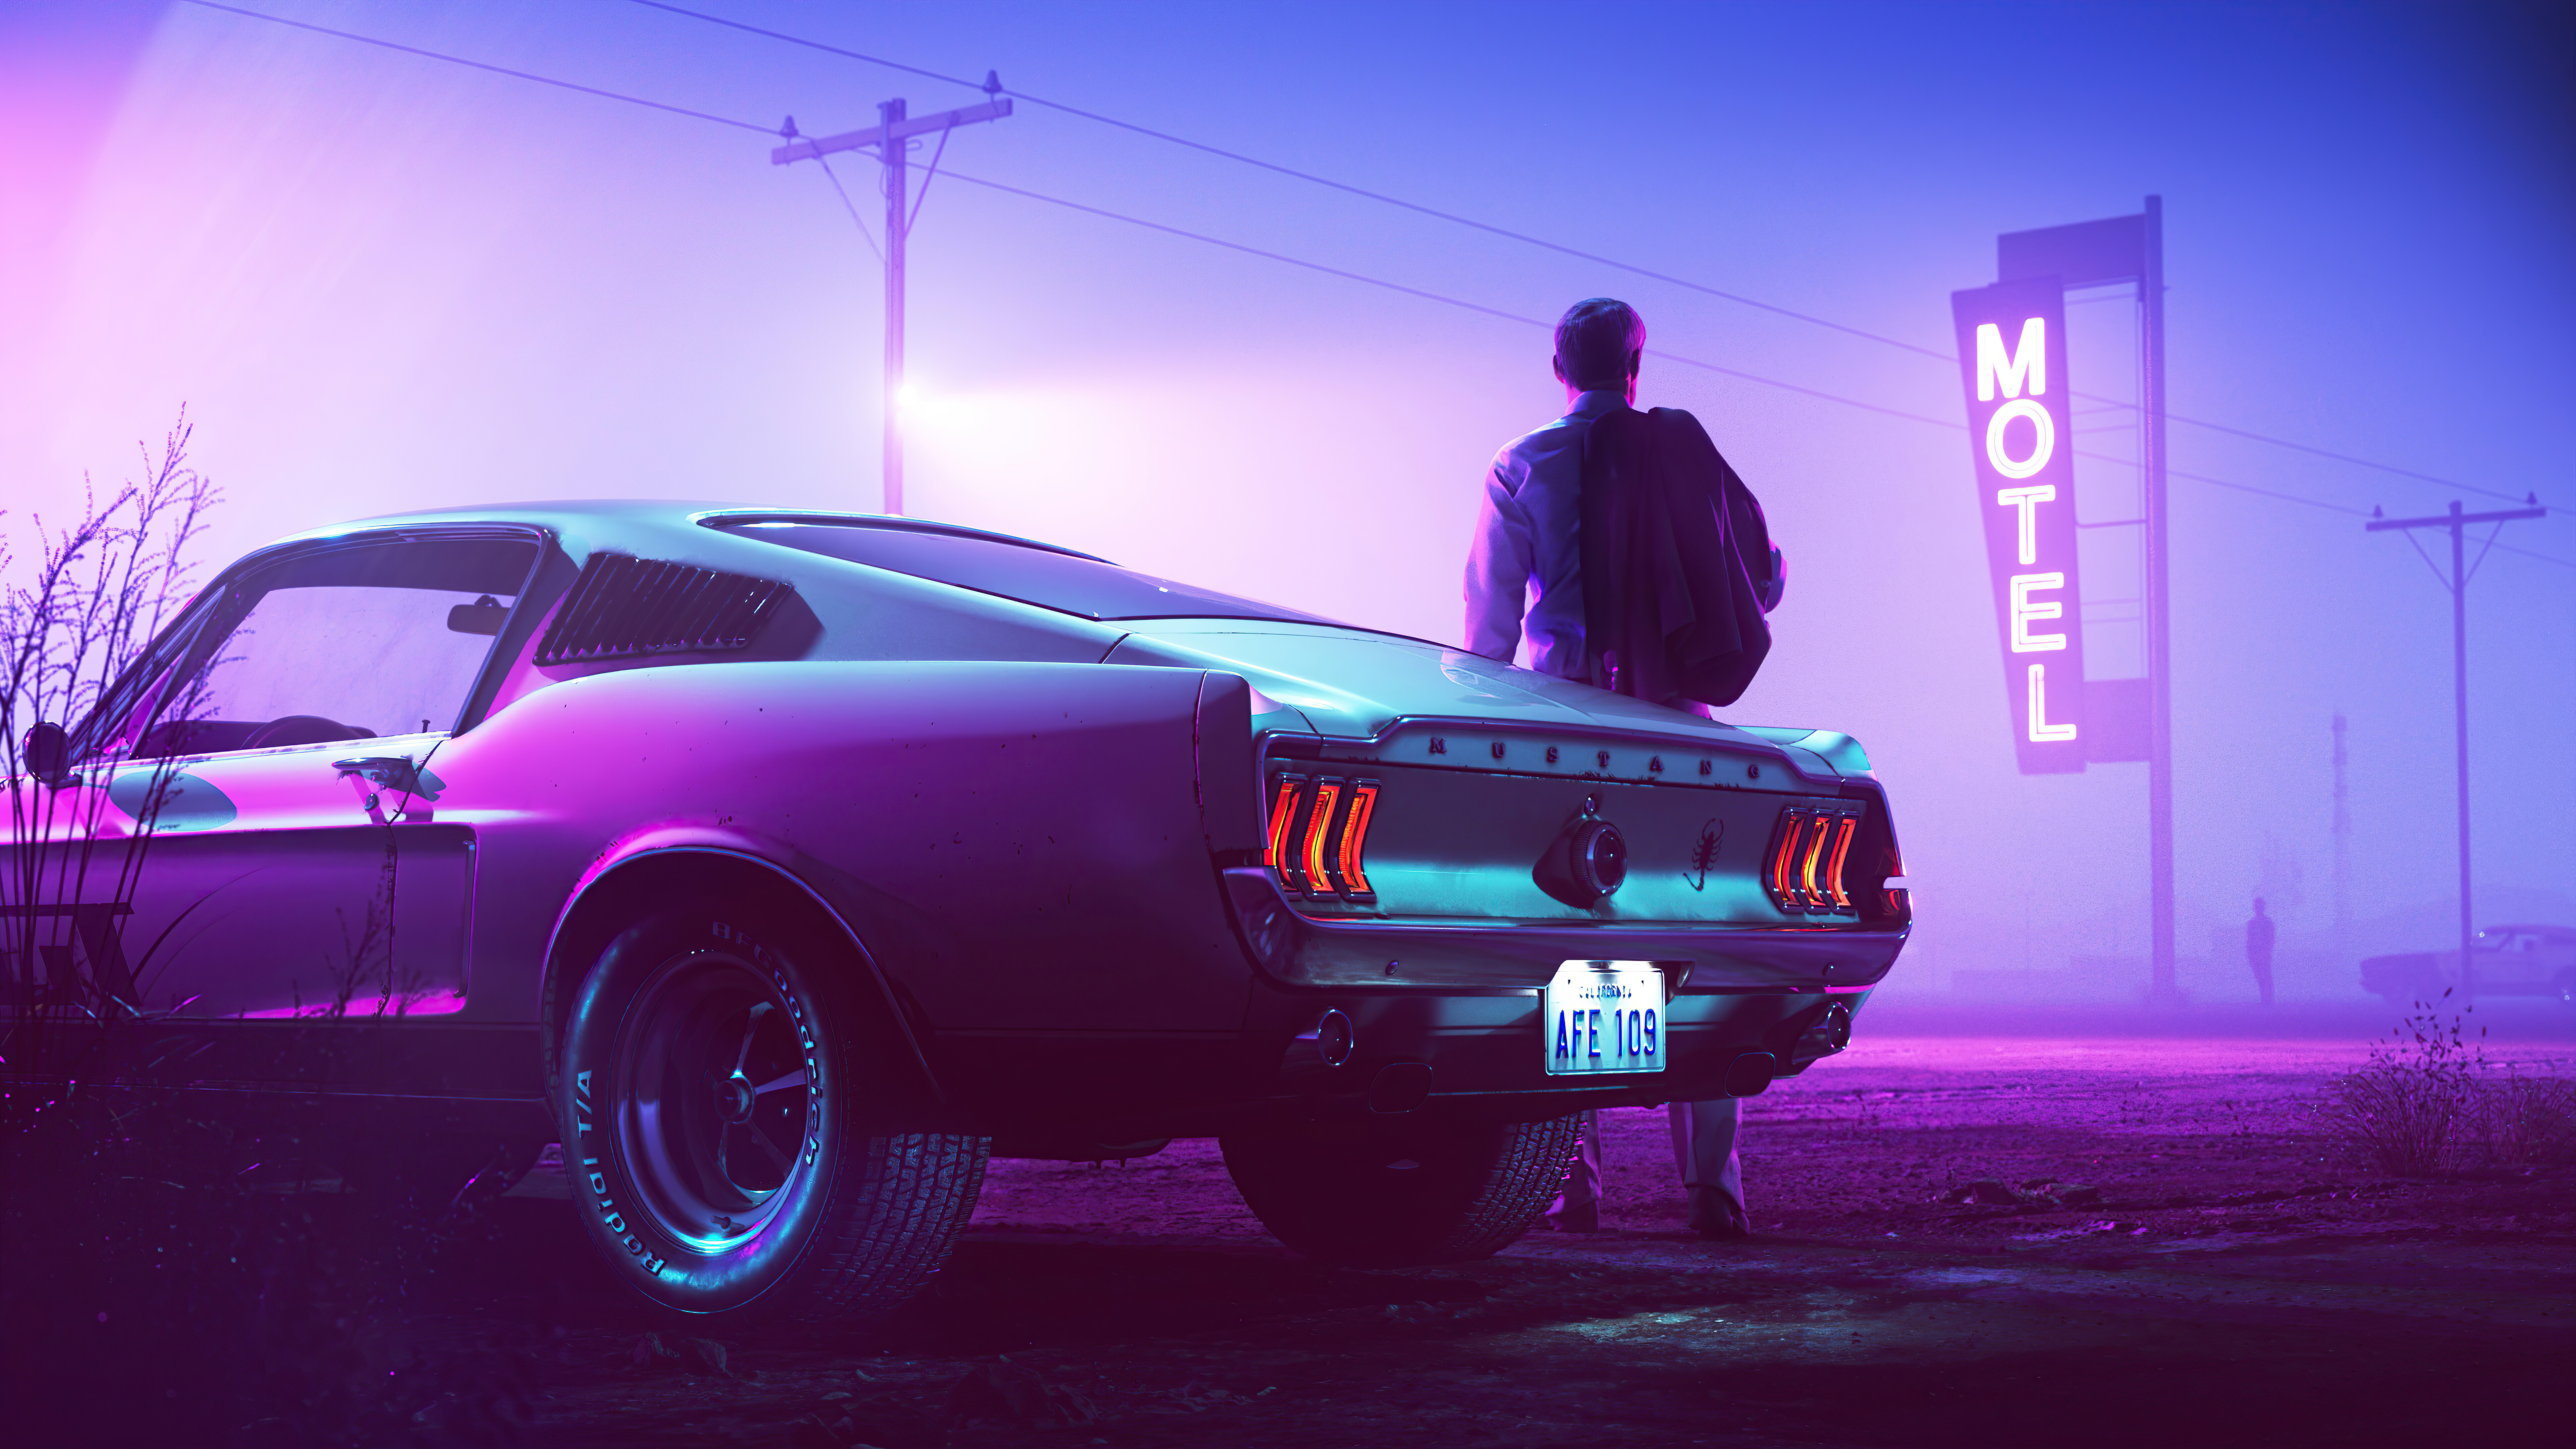 Hipwallpaper is considered to be one of the most powerful curated wallpaper community online. Mustang Sports Car 8k Wallpaper 4 3060